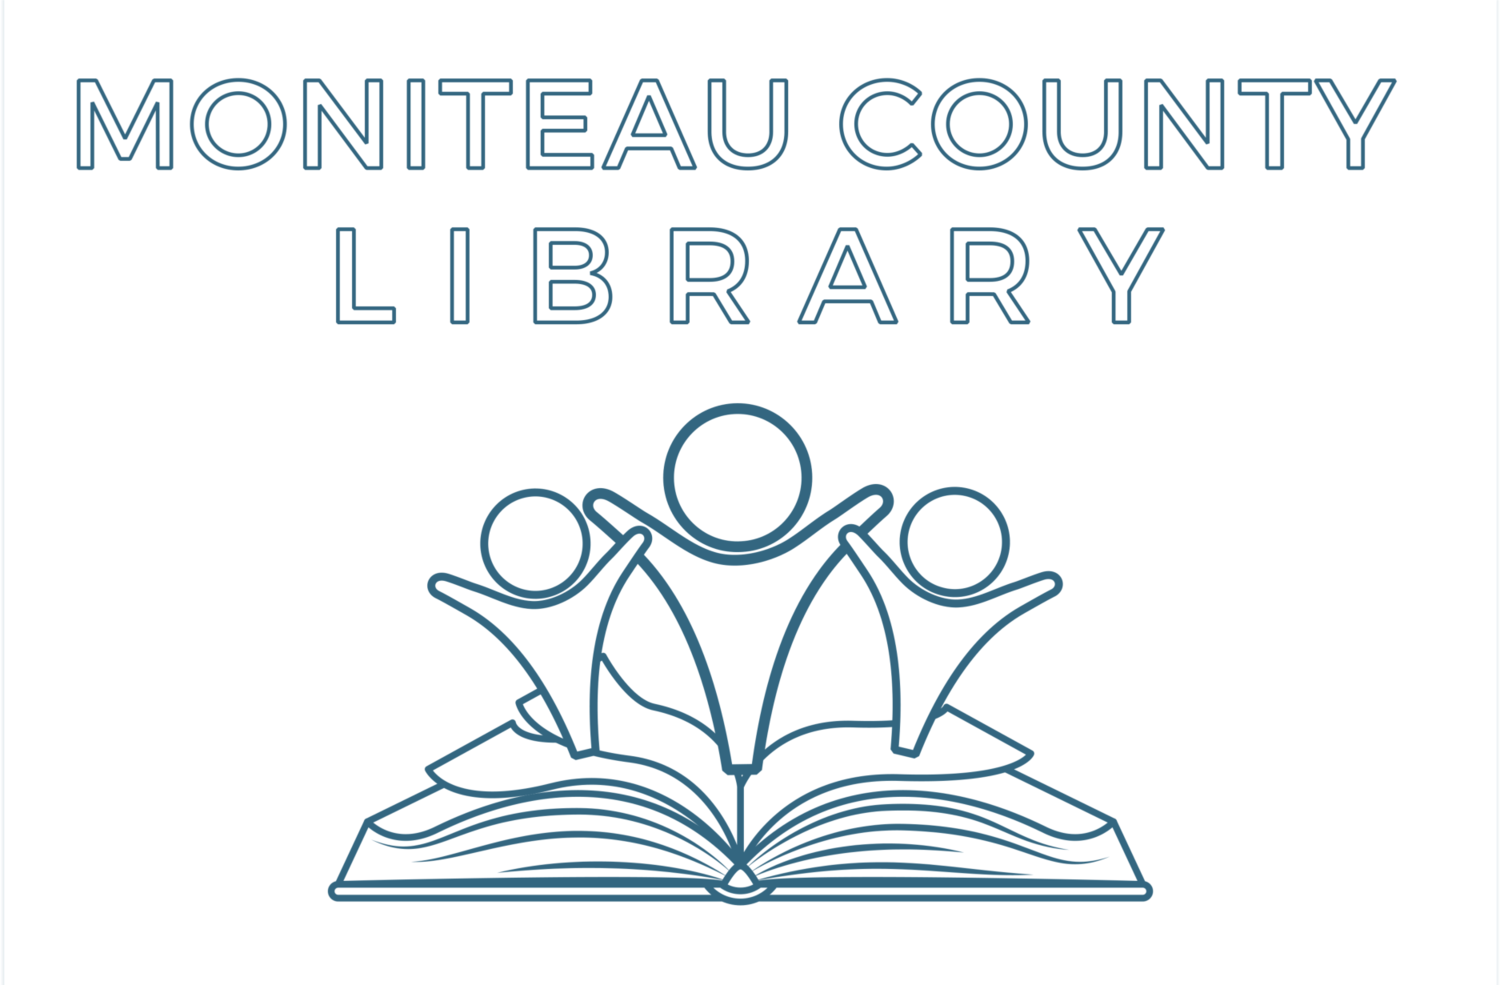 Moniteau County Library